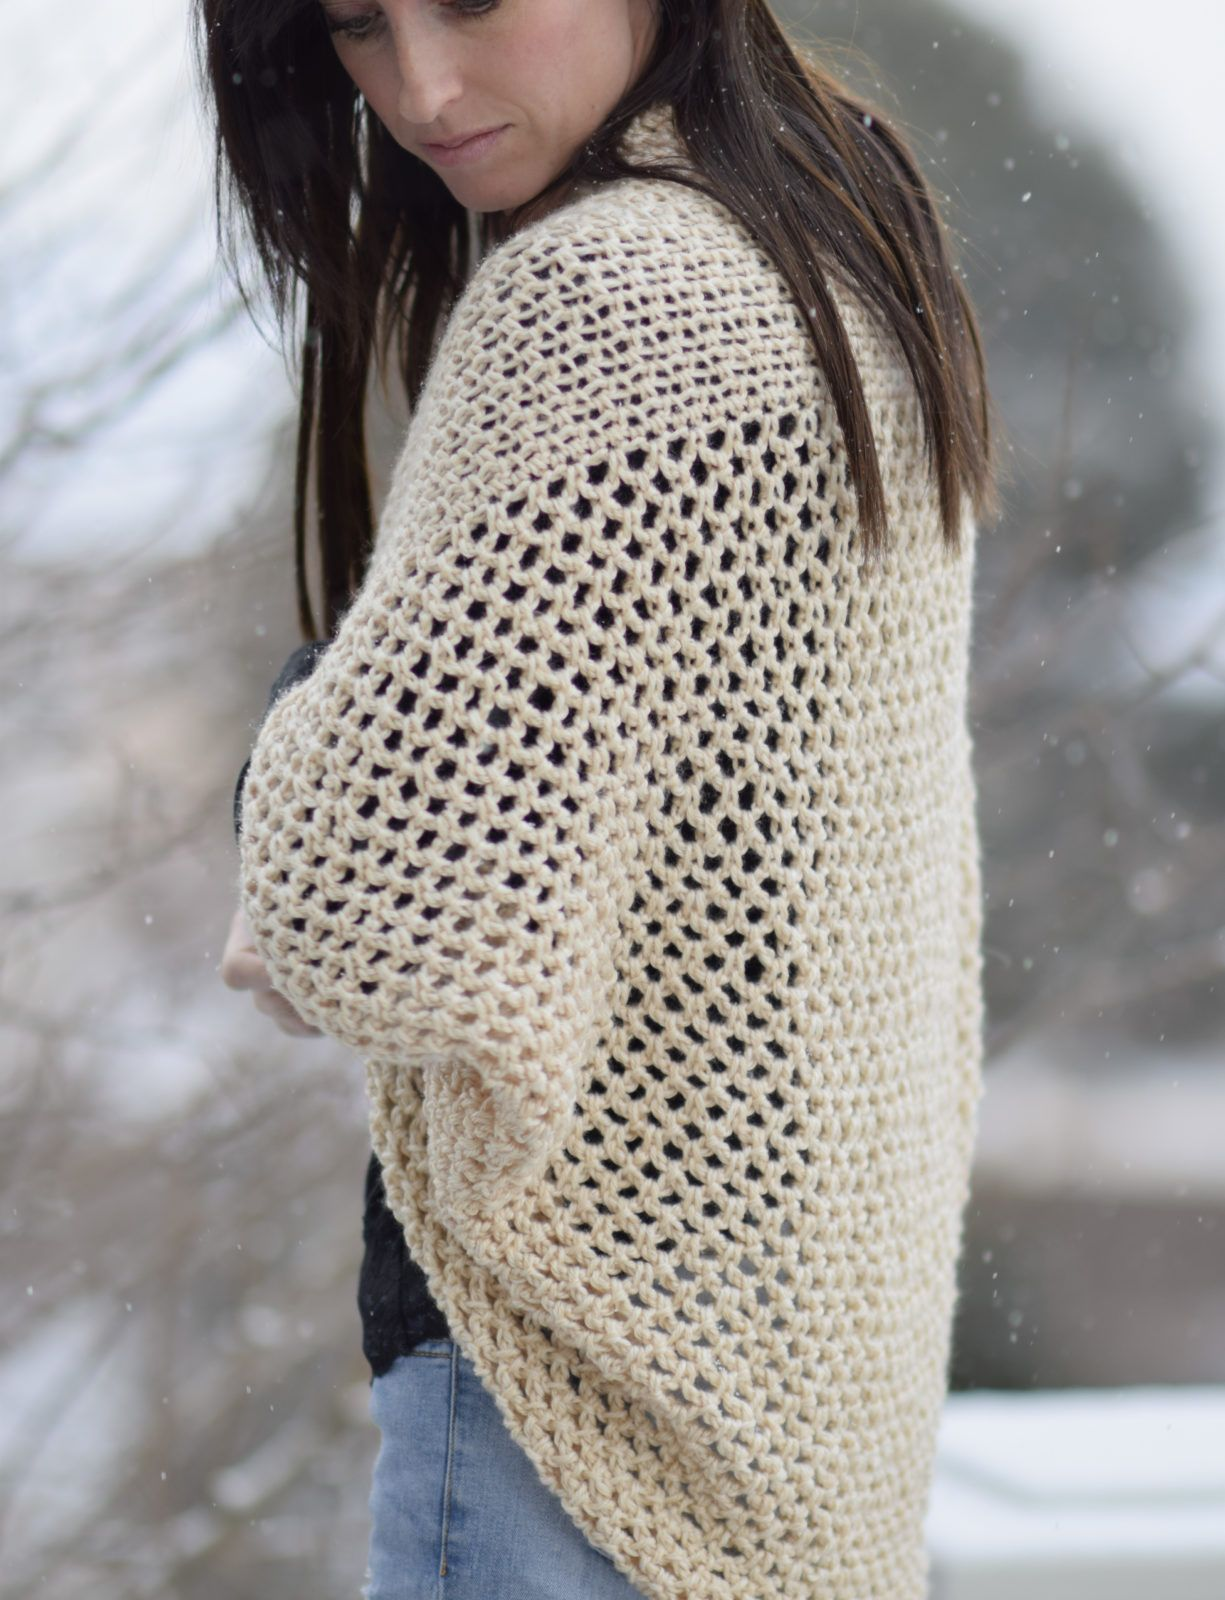 easy-crochet-sweater-pattern-shrug-mod-shrugs | crochet | Pinterest ...